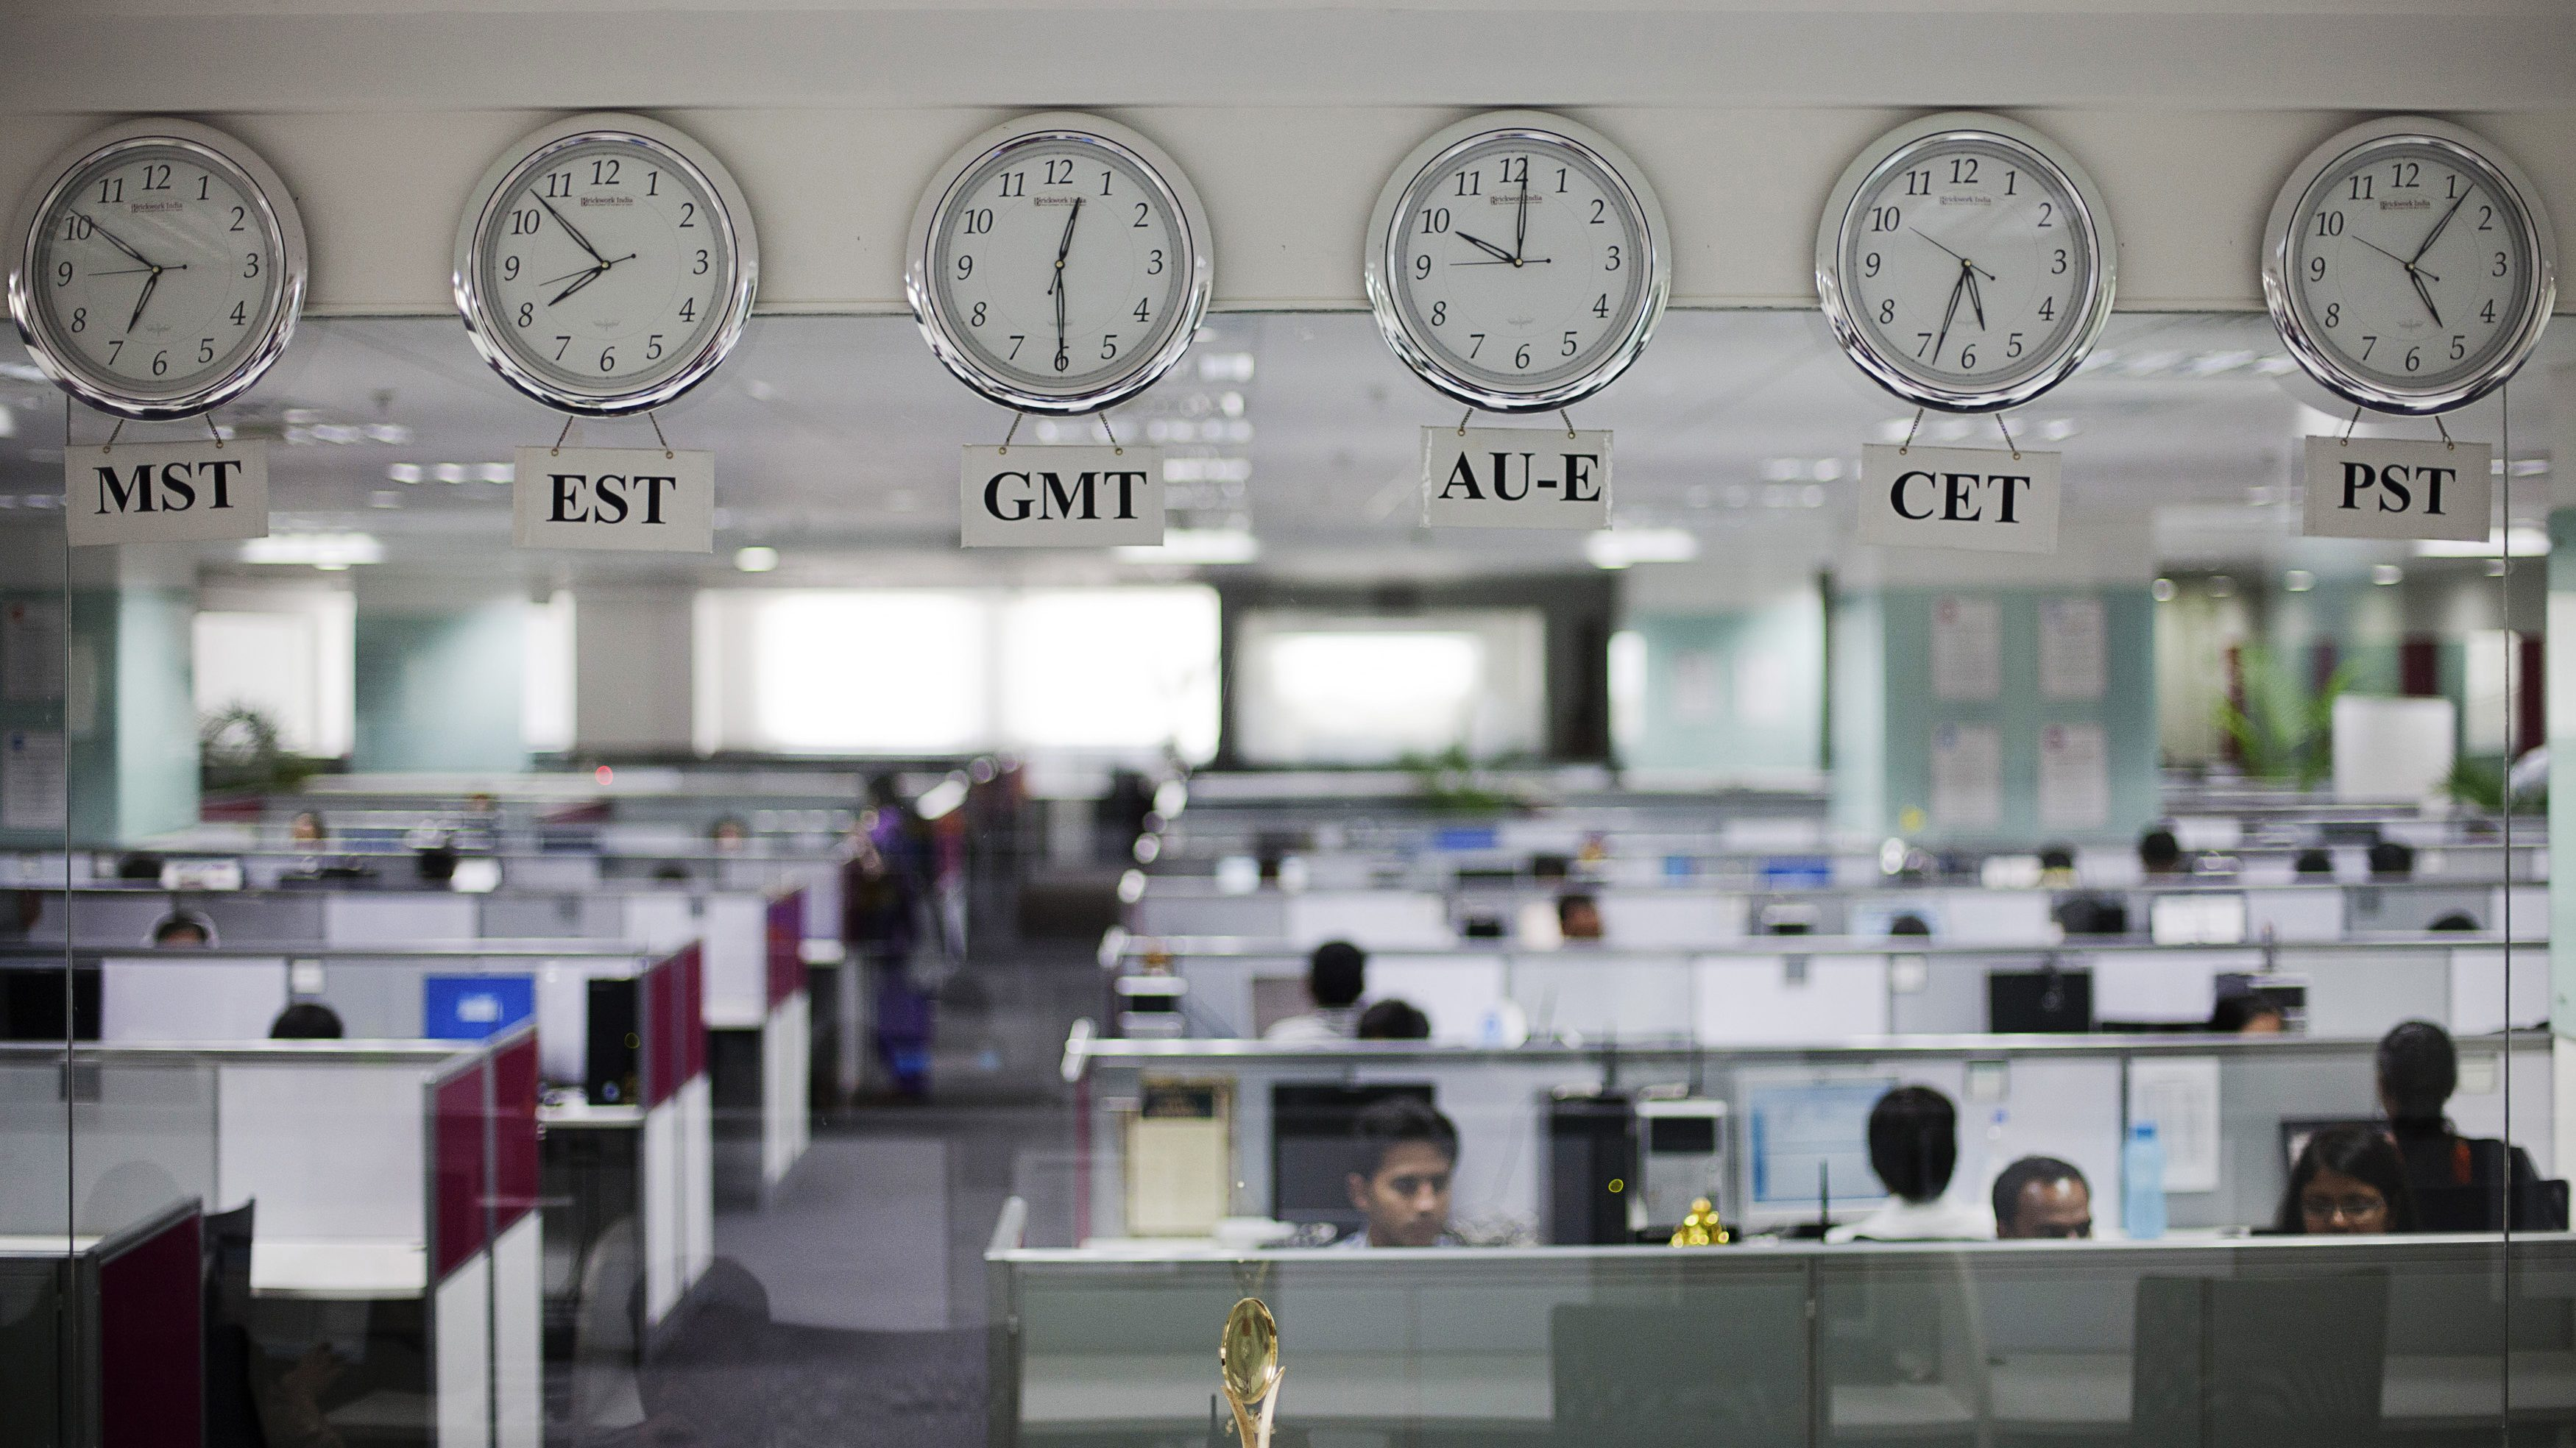 Workers are pictured beneath clocks displaying time zones in various parts of the world at an outsourcing centre in Bangalore February 29, 2012. The business of storing, decoding and analysing unstructured data - think video, Facebook updates, Tweets, Internet searches and public cameras - along with mountains of facts and figures can help companies increase profits, cut costs and improve service, and is now one of the world's hottest industries. It's called Big Data, and although much of the work is done in the United States, India is getting an increasing slice of the action, re-energising an IT sector whose growth has begun to falter. Picture taken February 29, 2012. REUTERS/Vivek Prakash (INDIA - Tags: BUSINESS EMPLOYMENT POLITICS) - GM1E8A80E5W01